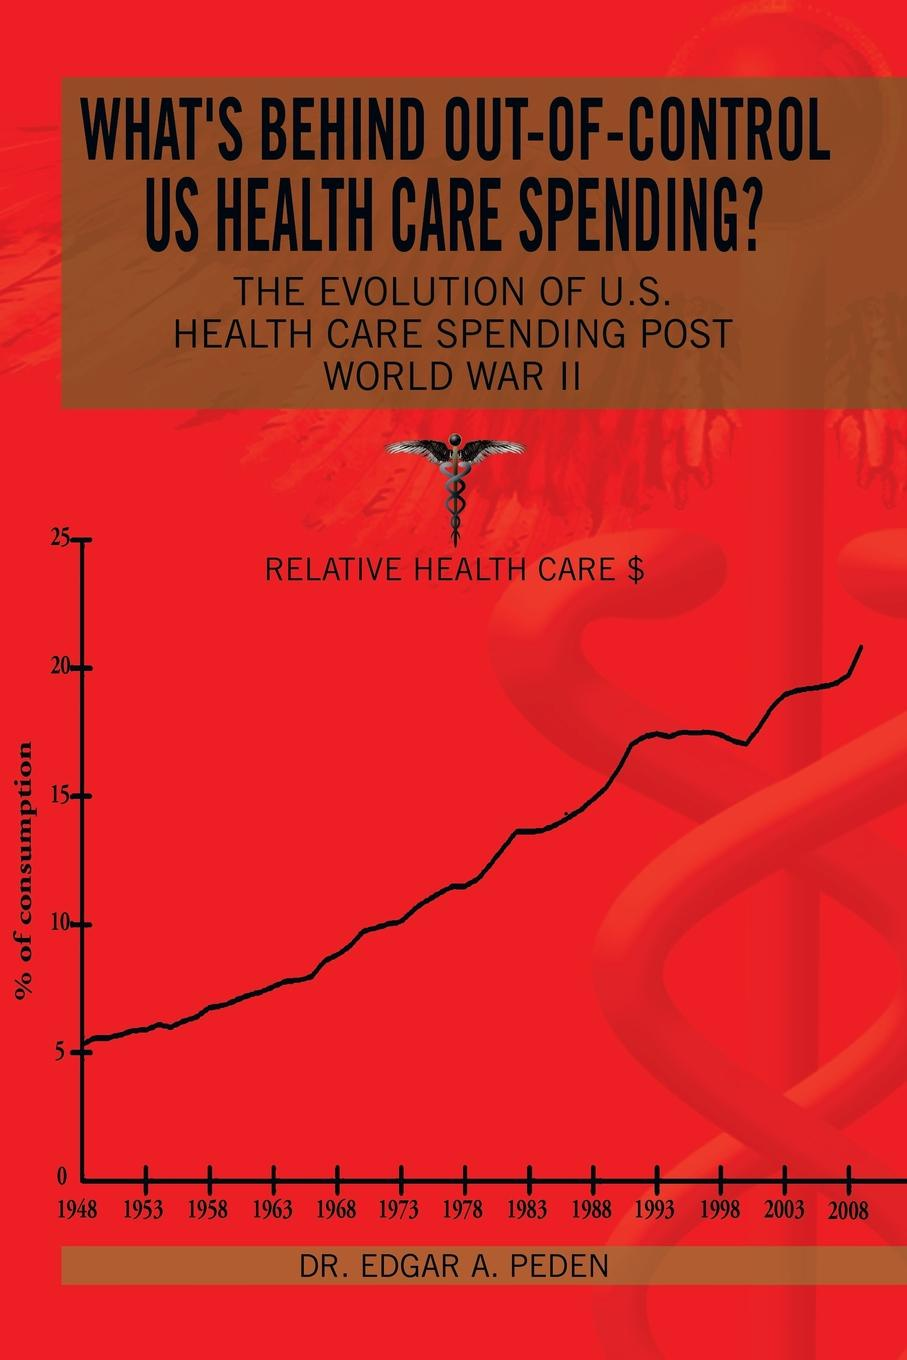 Dr. Edgar A. Peden What's behind out-of-control US health care spending?. The Evolution of U.S. Health Care Spending Post World War II цена 2017